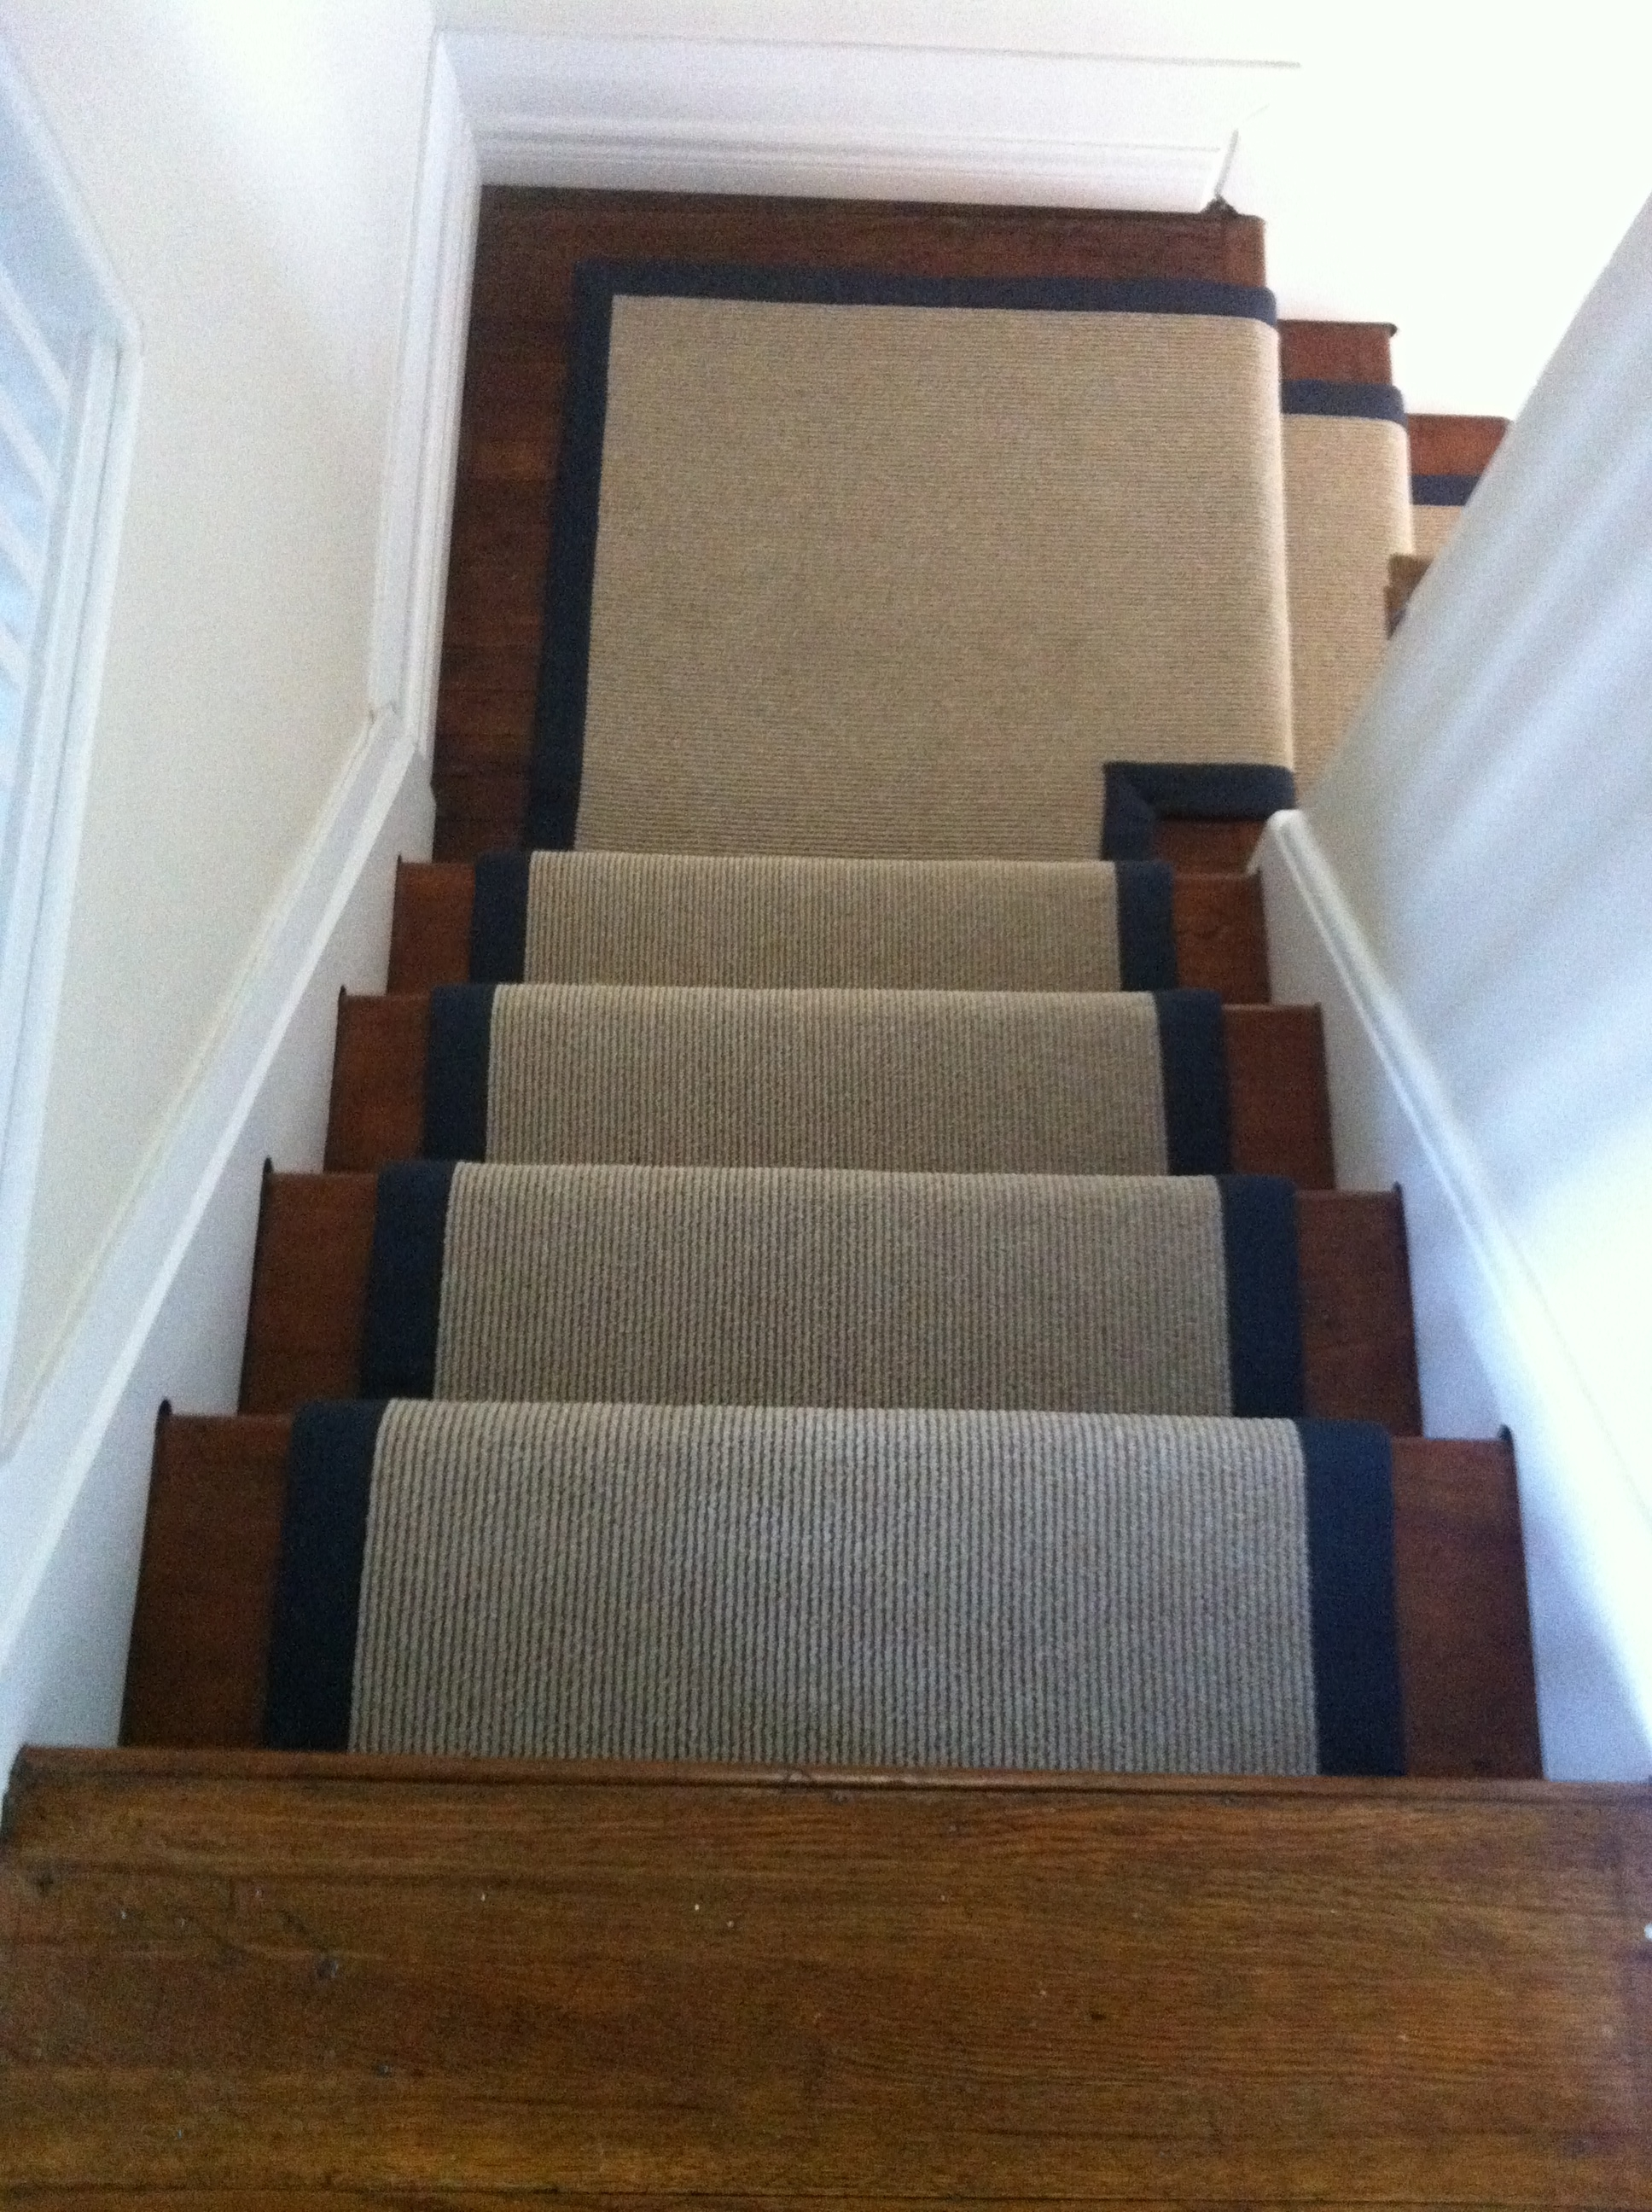 Berber Carpet Stair Runners Toronto Staircase Carpeting Cost   Durable Carpet For Stairs   High Traffic   Flower Design   Low Pile   Masland   Stair Treads